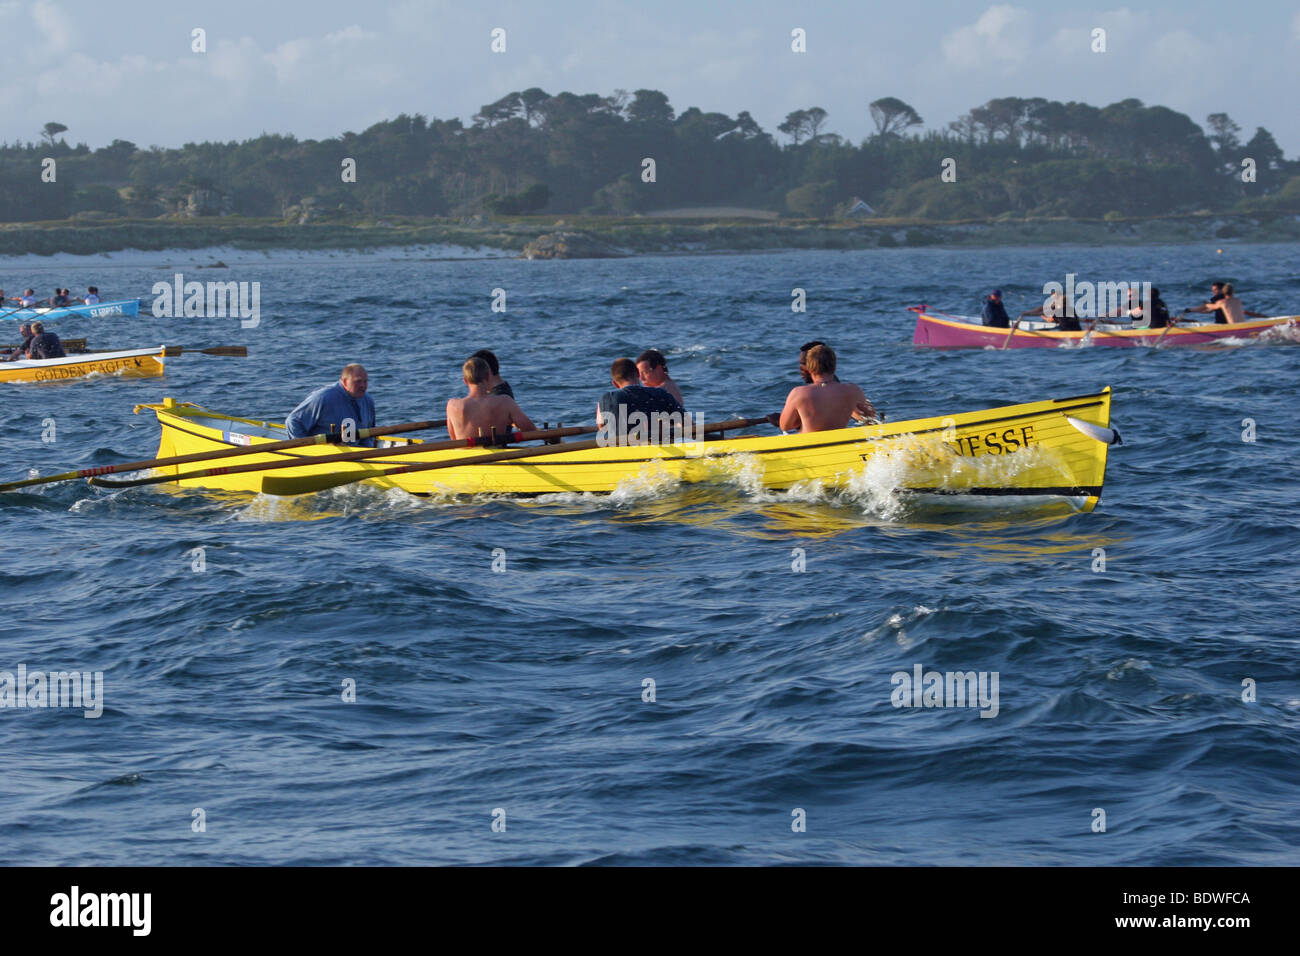 gig boat racing on the isles of scilly - Stock Image